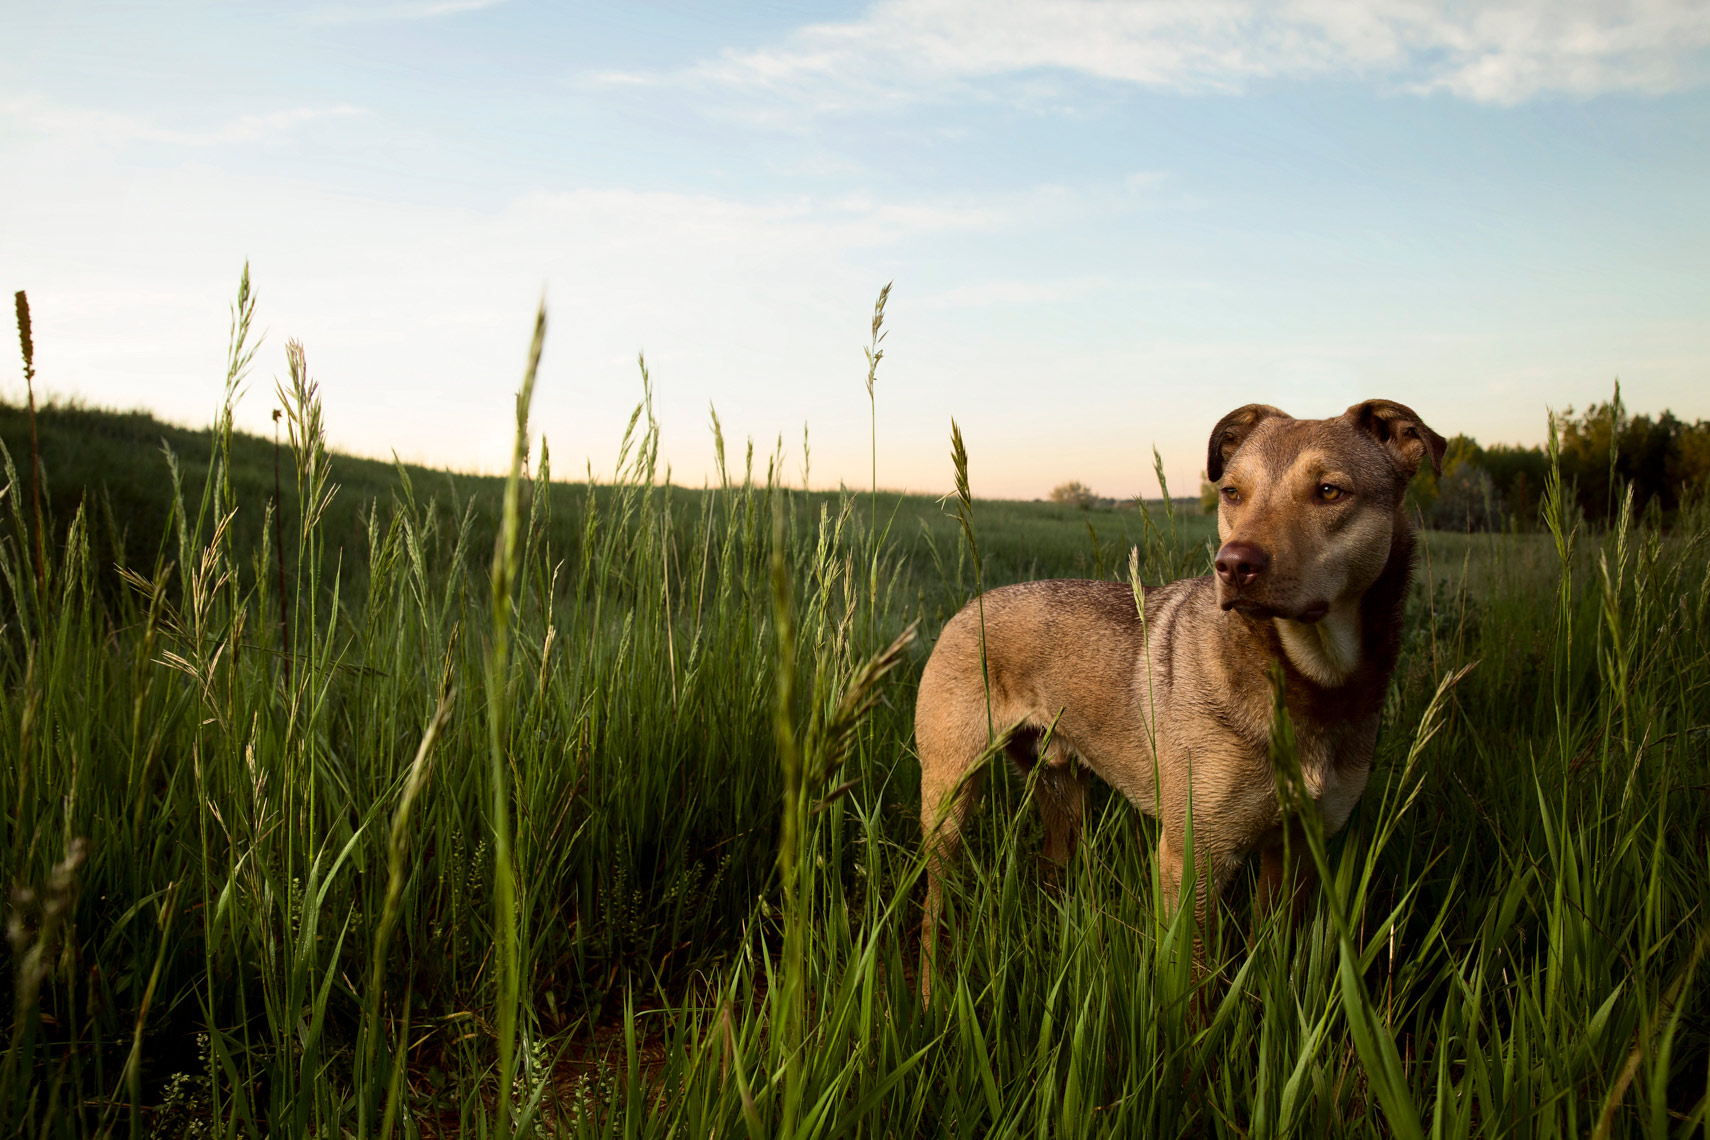 A rescued dog standing in tall grass in Boulder, Colorado